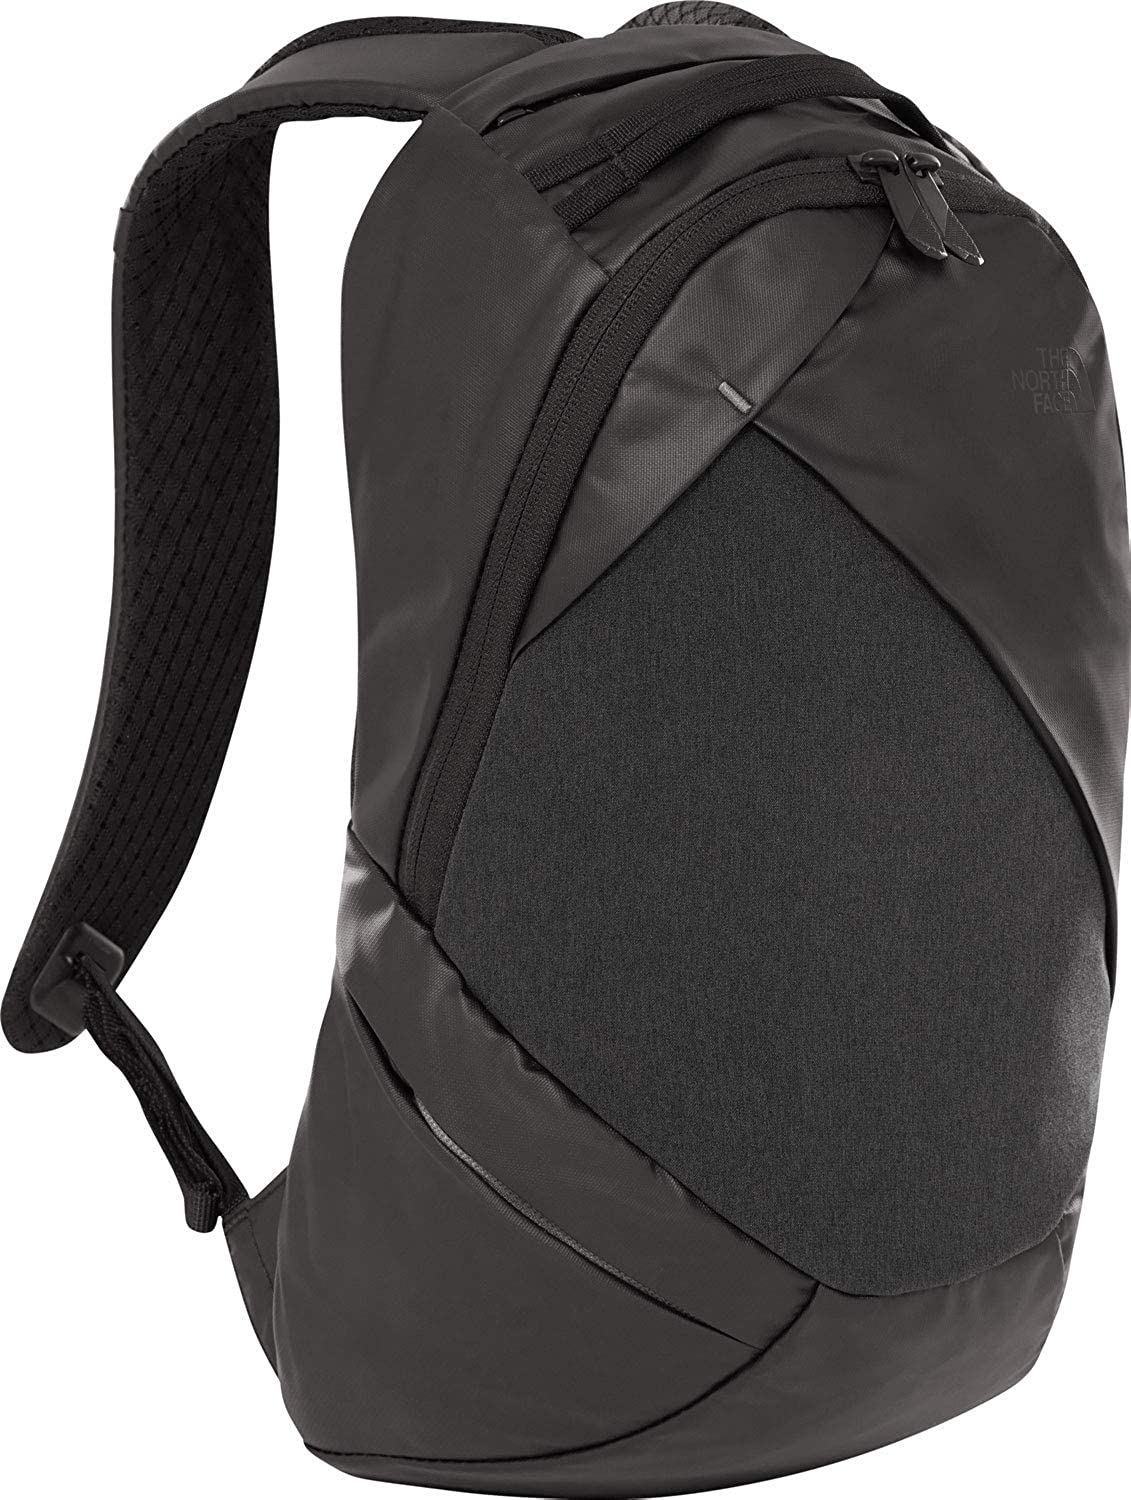 [THE NORTH FACE(ザノースフェイス)] The North Face レディース Electra Backpack バックパック BLACK [並行輸入品]